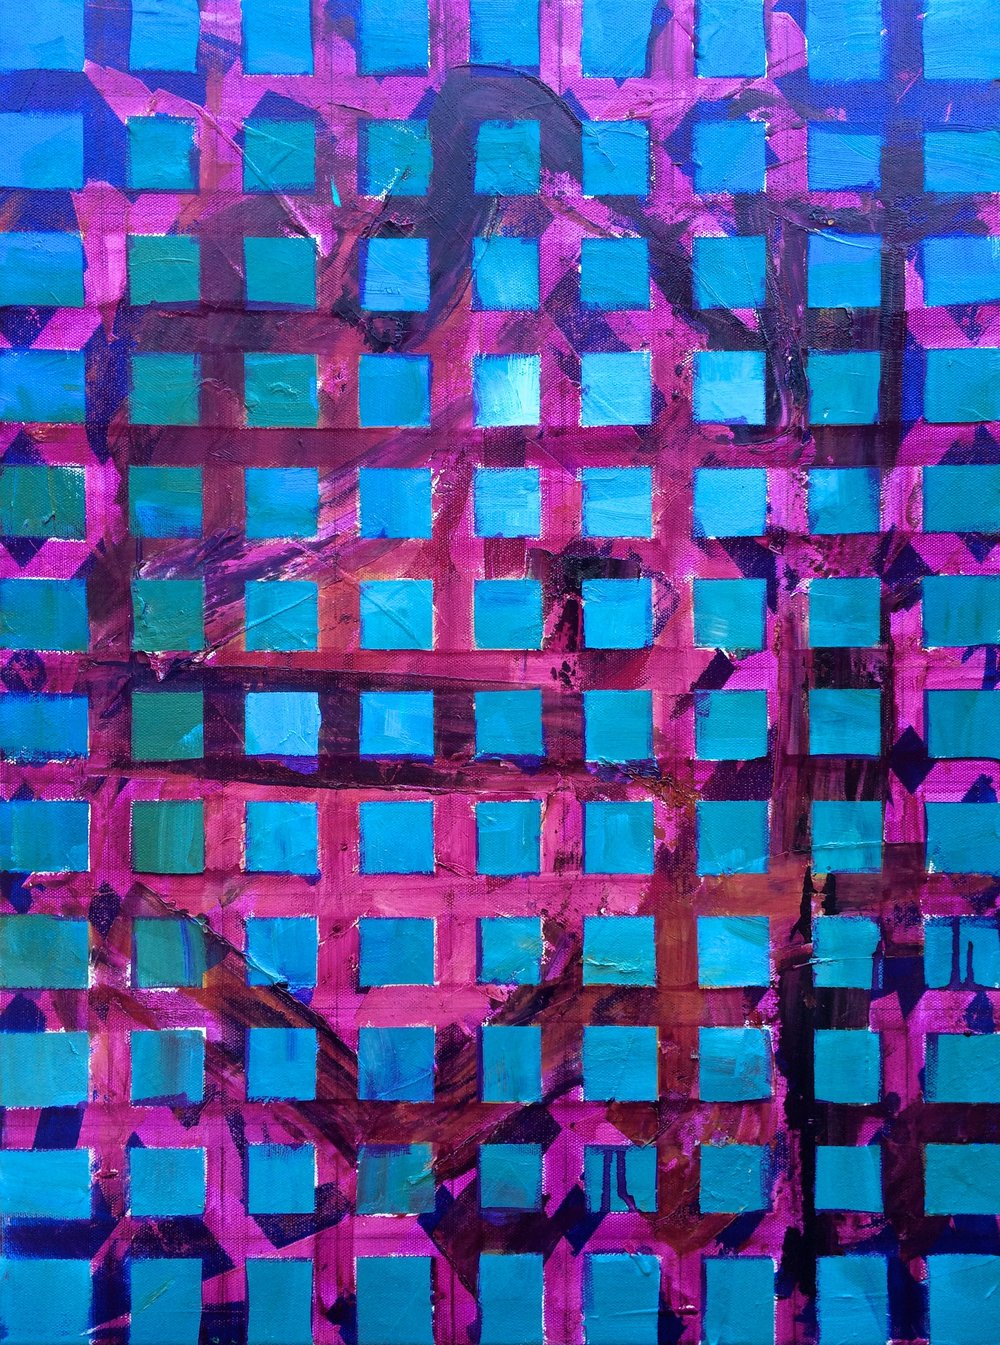 The Grid - 18 x 24